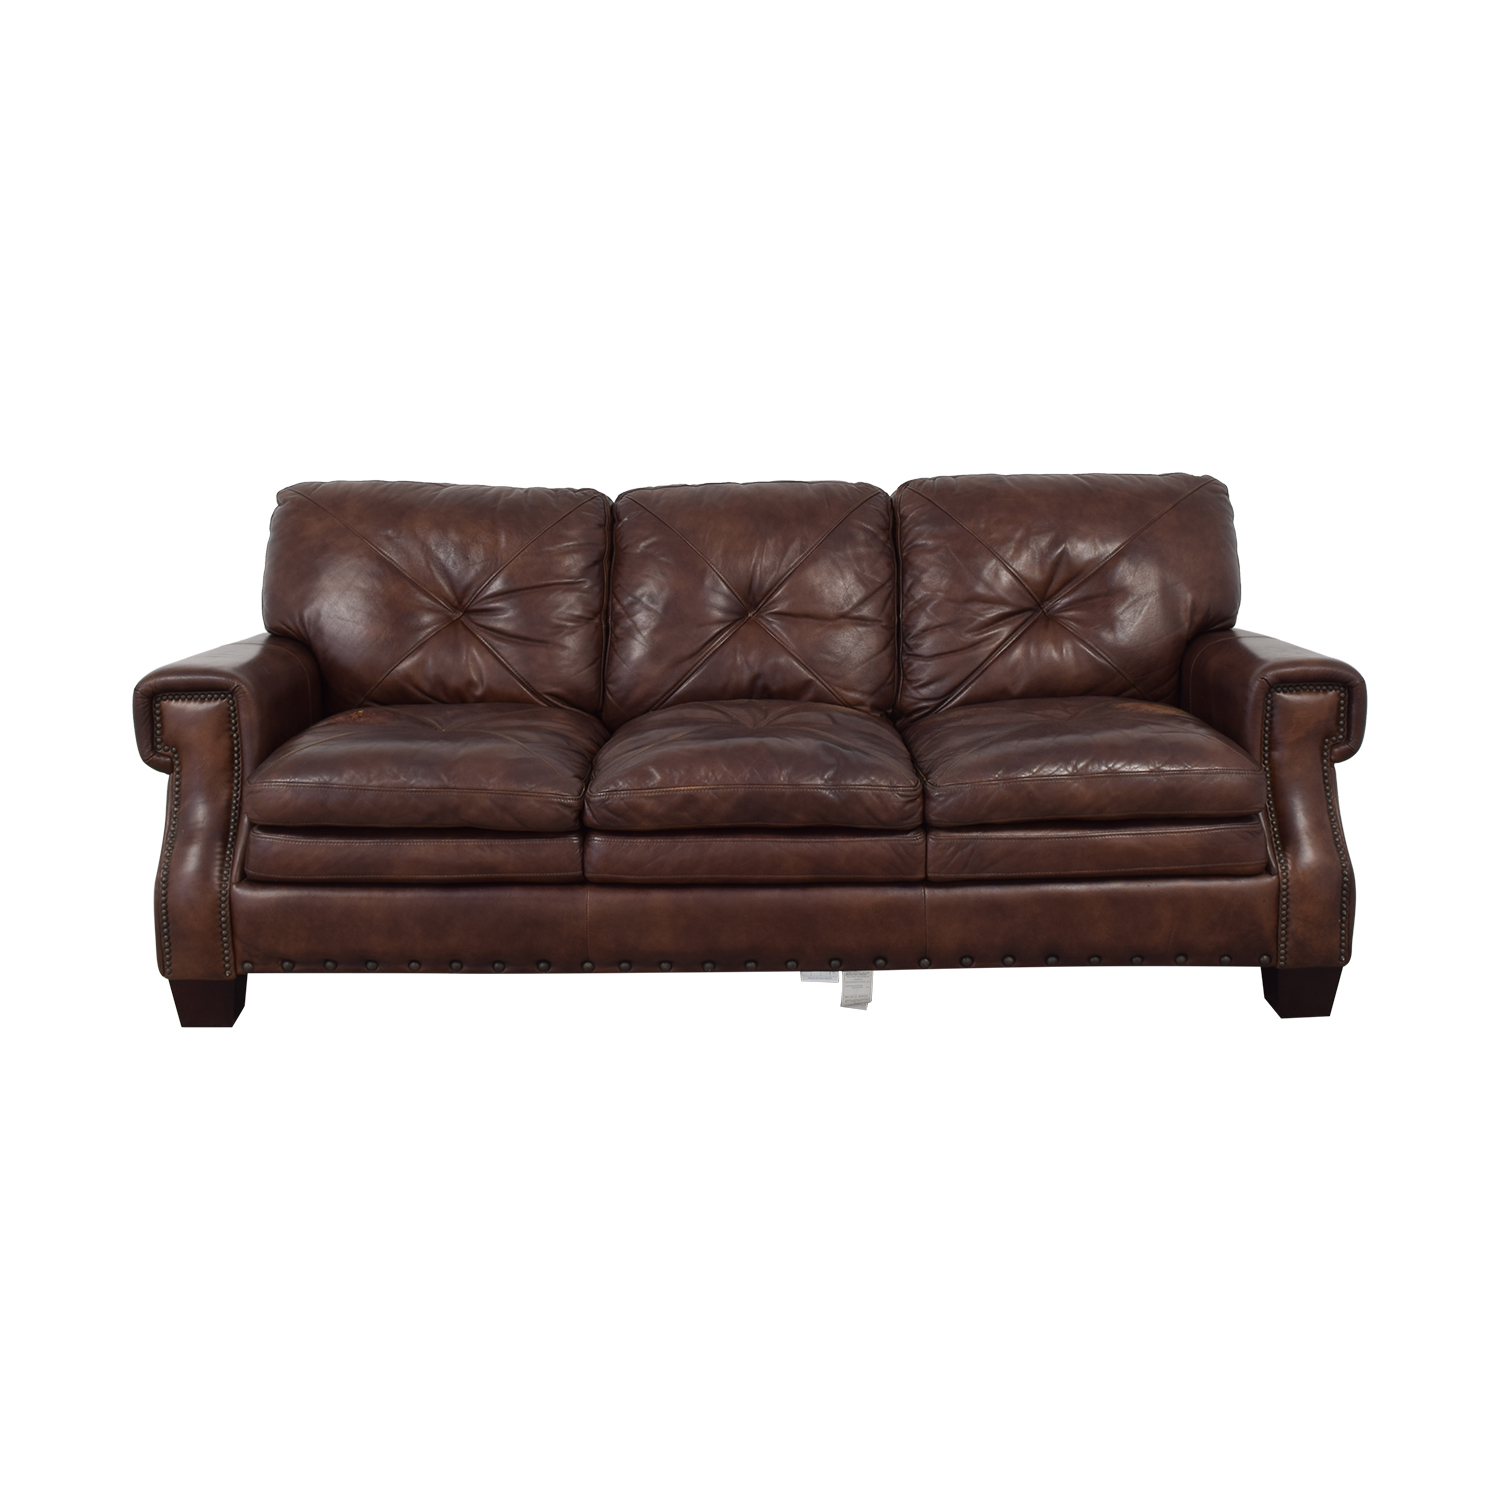 Bob's Discount Furniture Bob's Discount Furniture Kennedy Leather Sofa nj